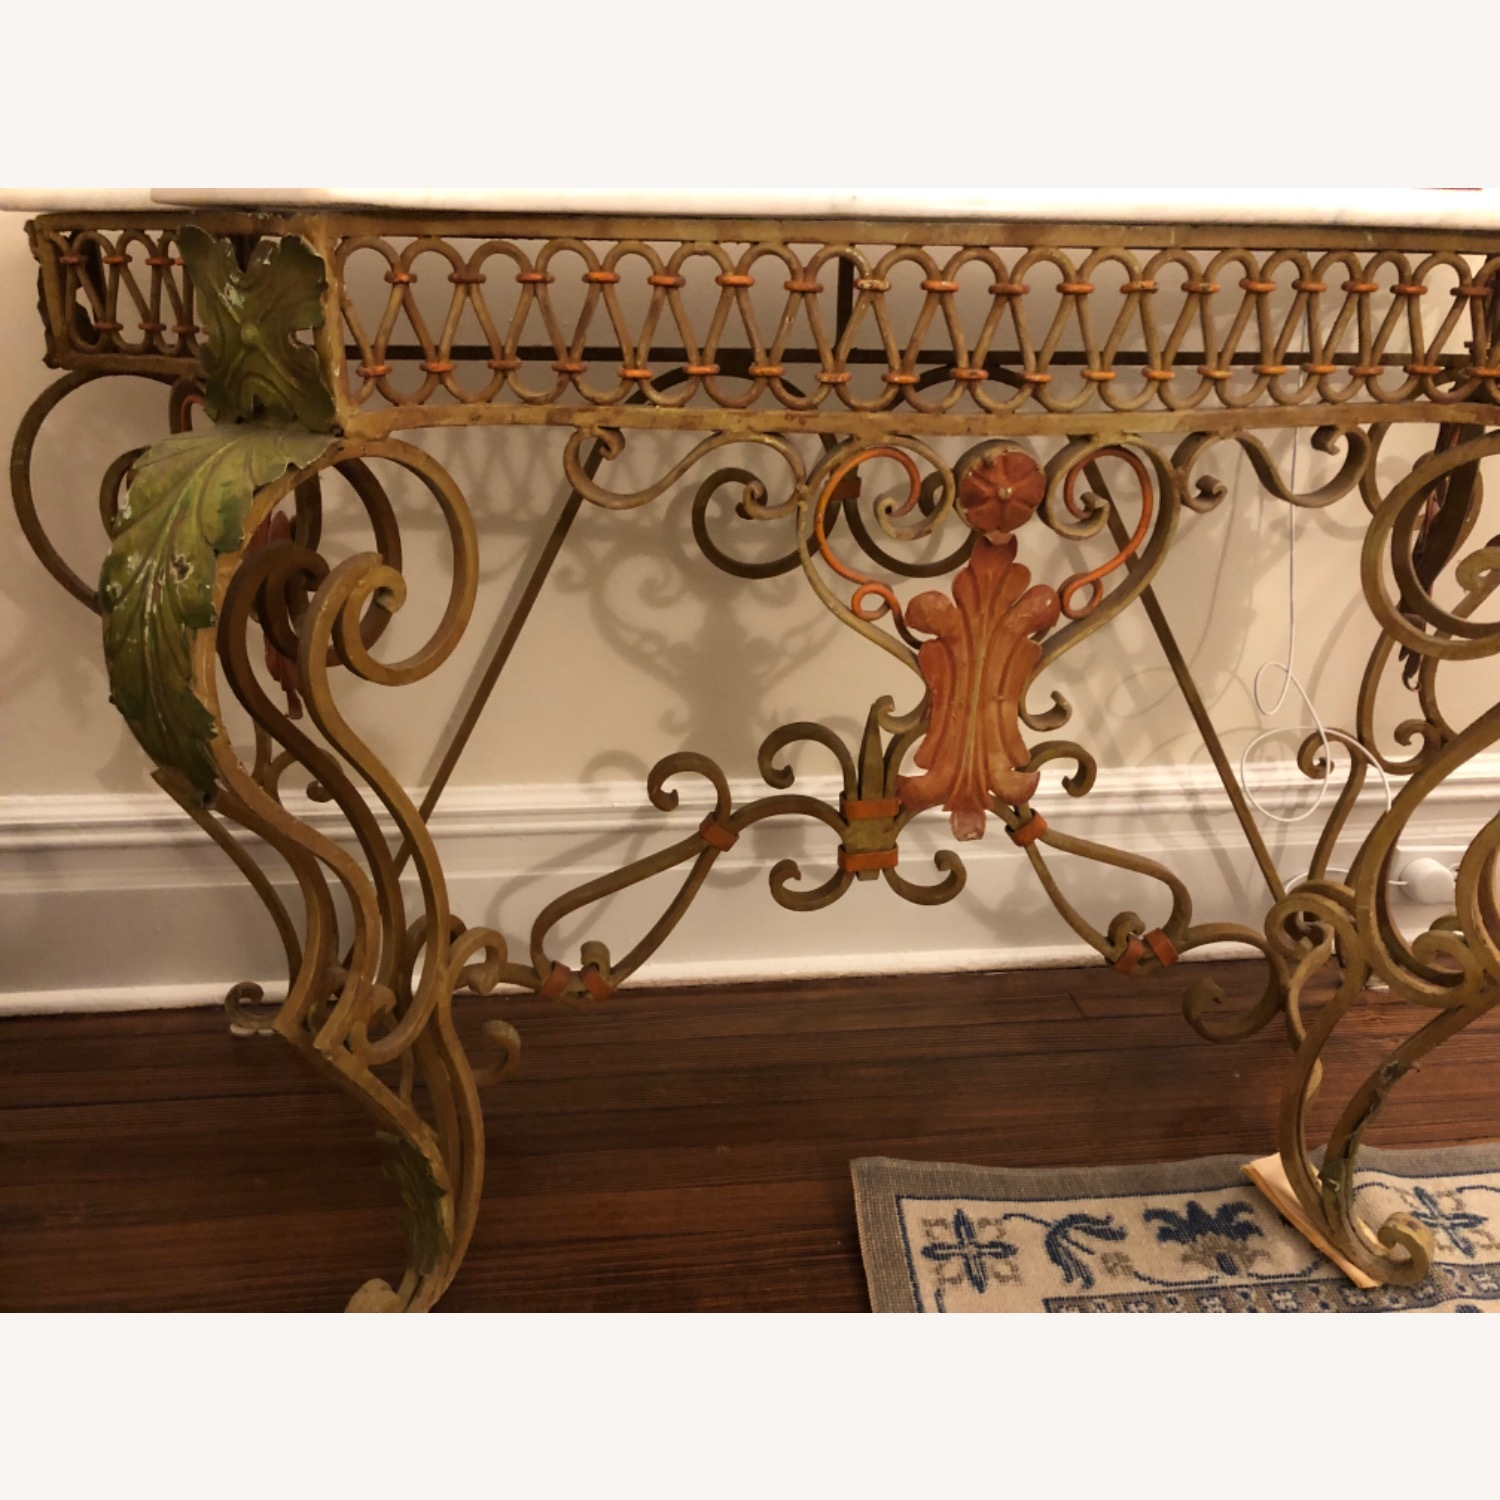 French Antique Iron Table with Marble Top - image-3